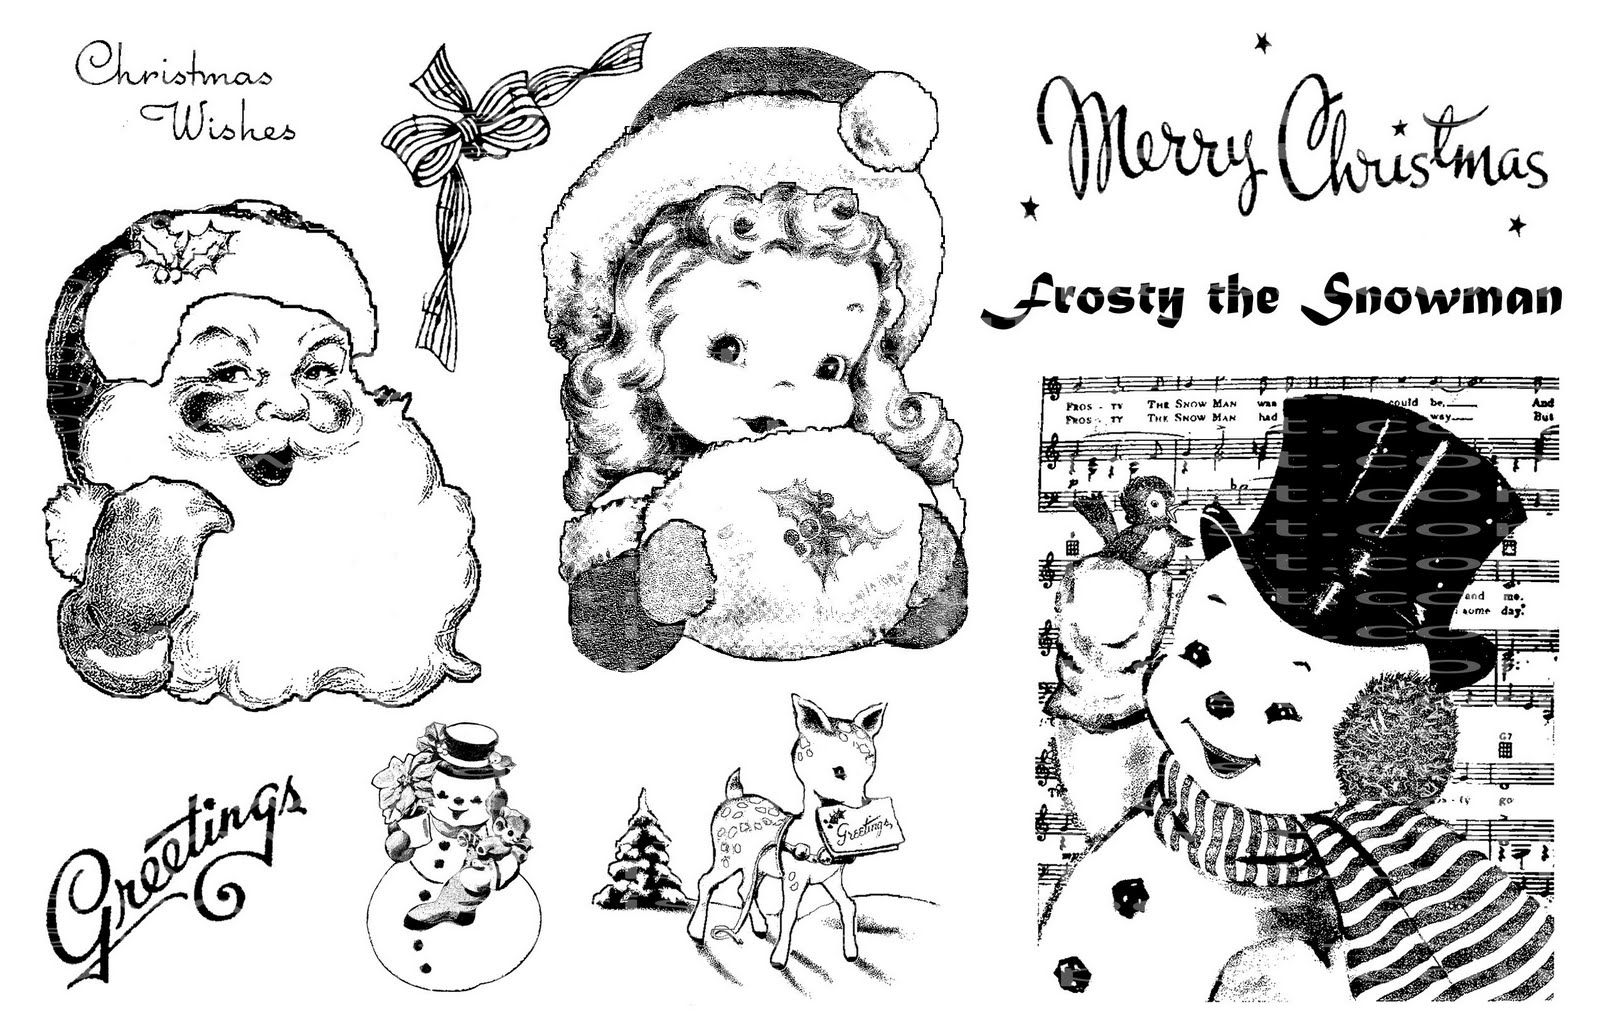 Frosty Friends I Love The Sweetness Of Vintage Christmas Cards Secular Imagery Was Dreamy And Cuteso Sugary Sweet My Teeth Hurt Just To Look At